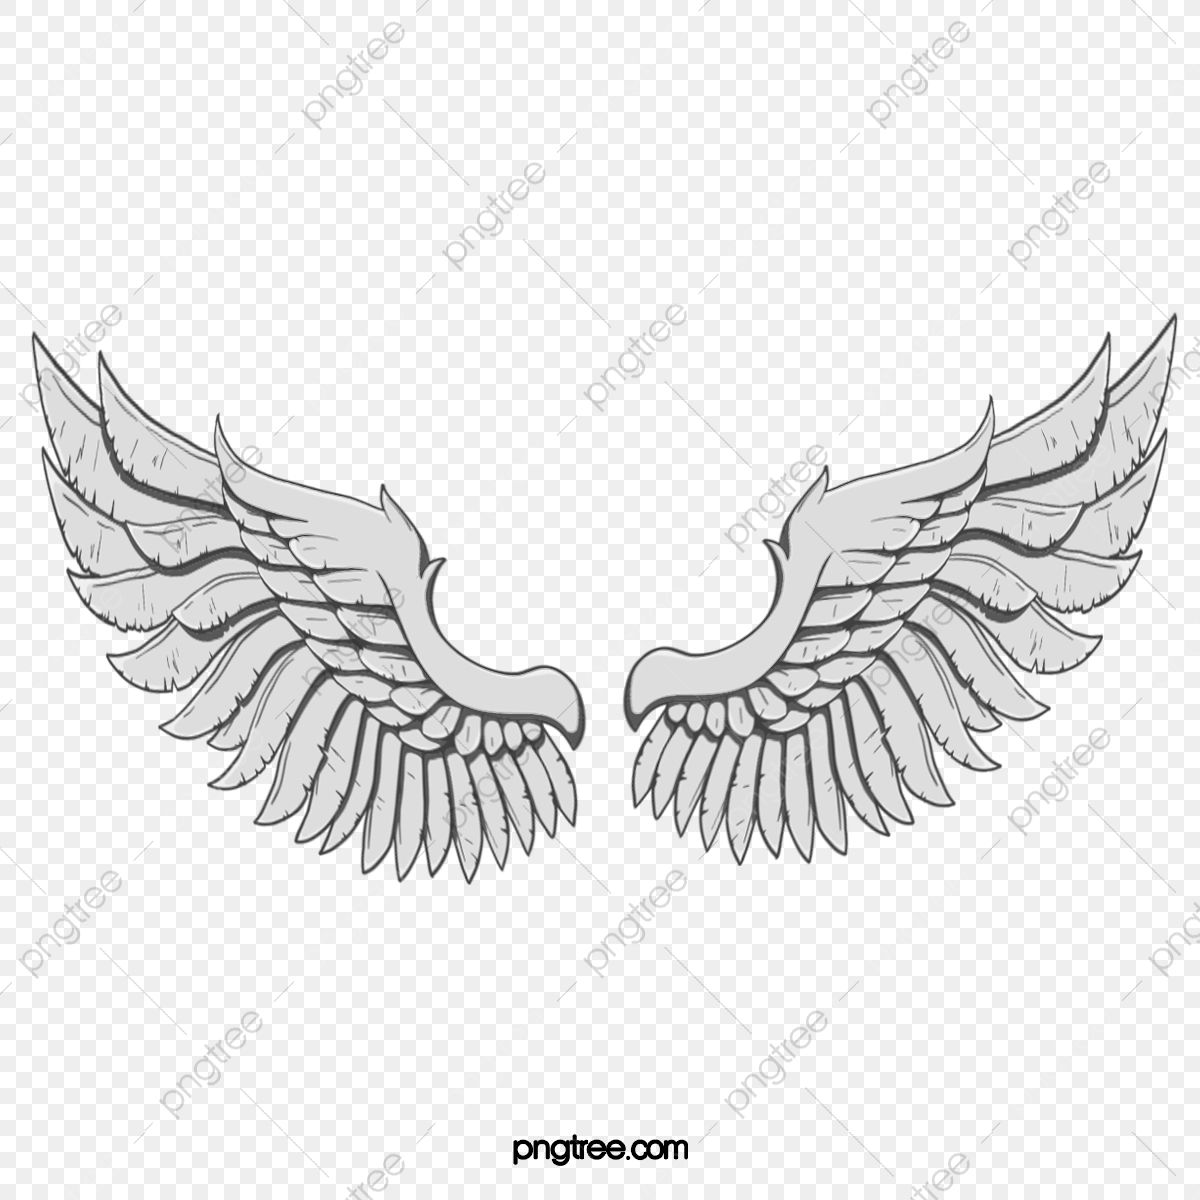 Hand Painted Angel Wings Angel Clipart Wings Clipart Wing Png Transparent Clipart Image And Psd File For Free Download In 2020 Cartoon Angel Wings Cartoon Wings Angel Wings Png